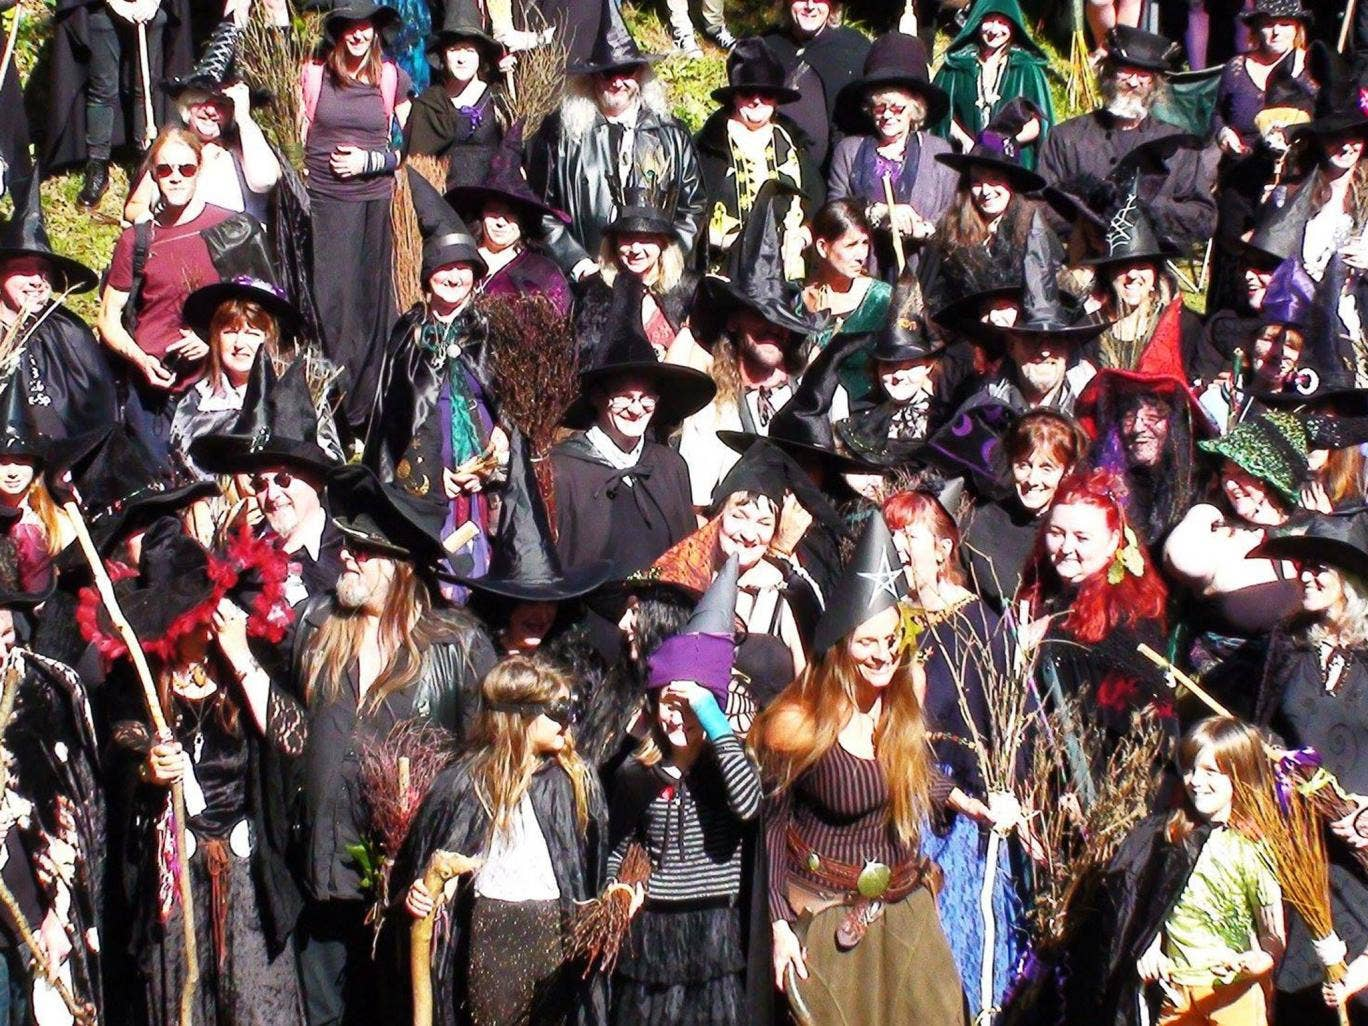 The Grand Witches' Tea Party at Rougemont Castle in Exeter remembered the persecution of women